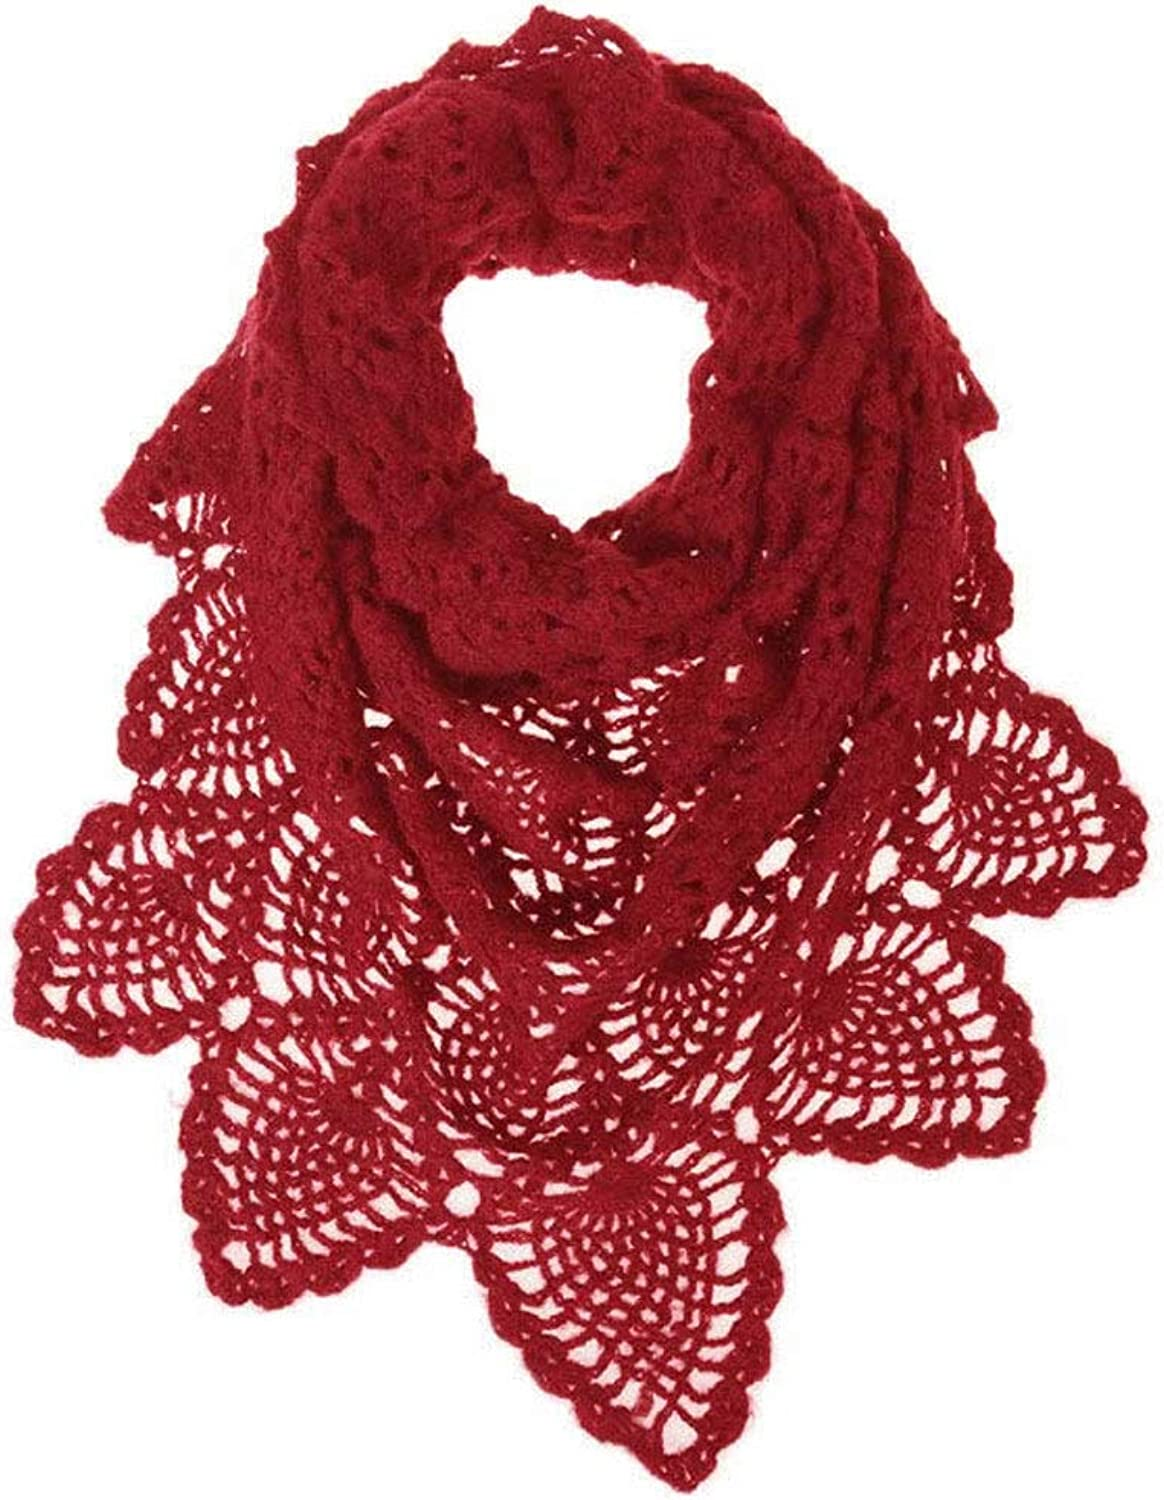 LBY Soft and Comfortable Spring and Autumn Thin Scarf Openwork Design Shawl Handmade Crochet Shawl Scarf (color   RED)